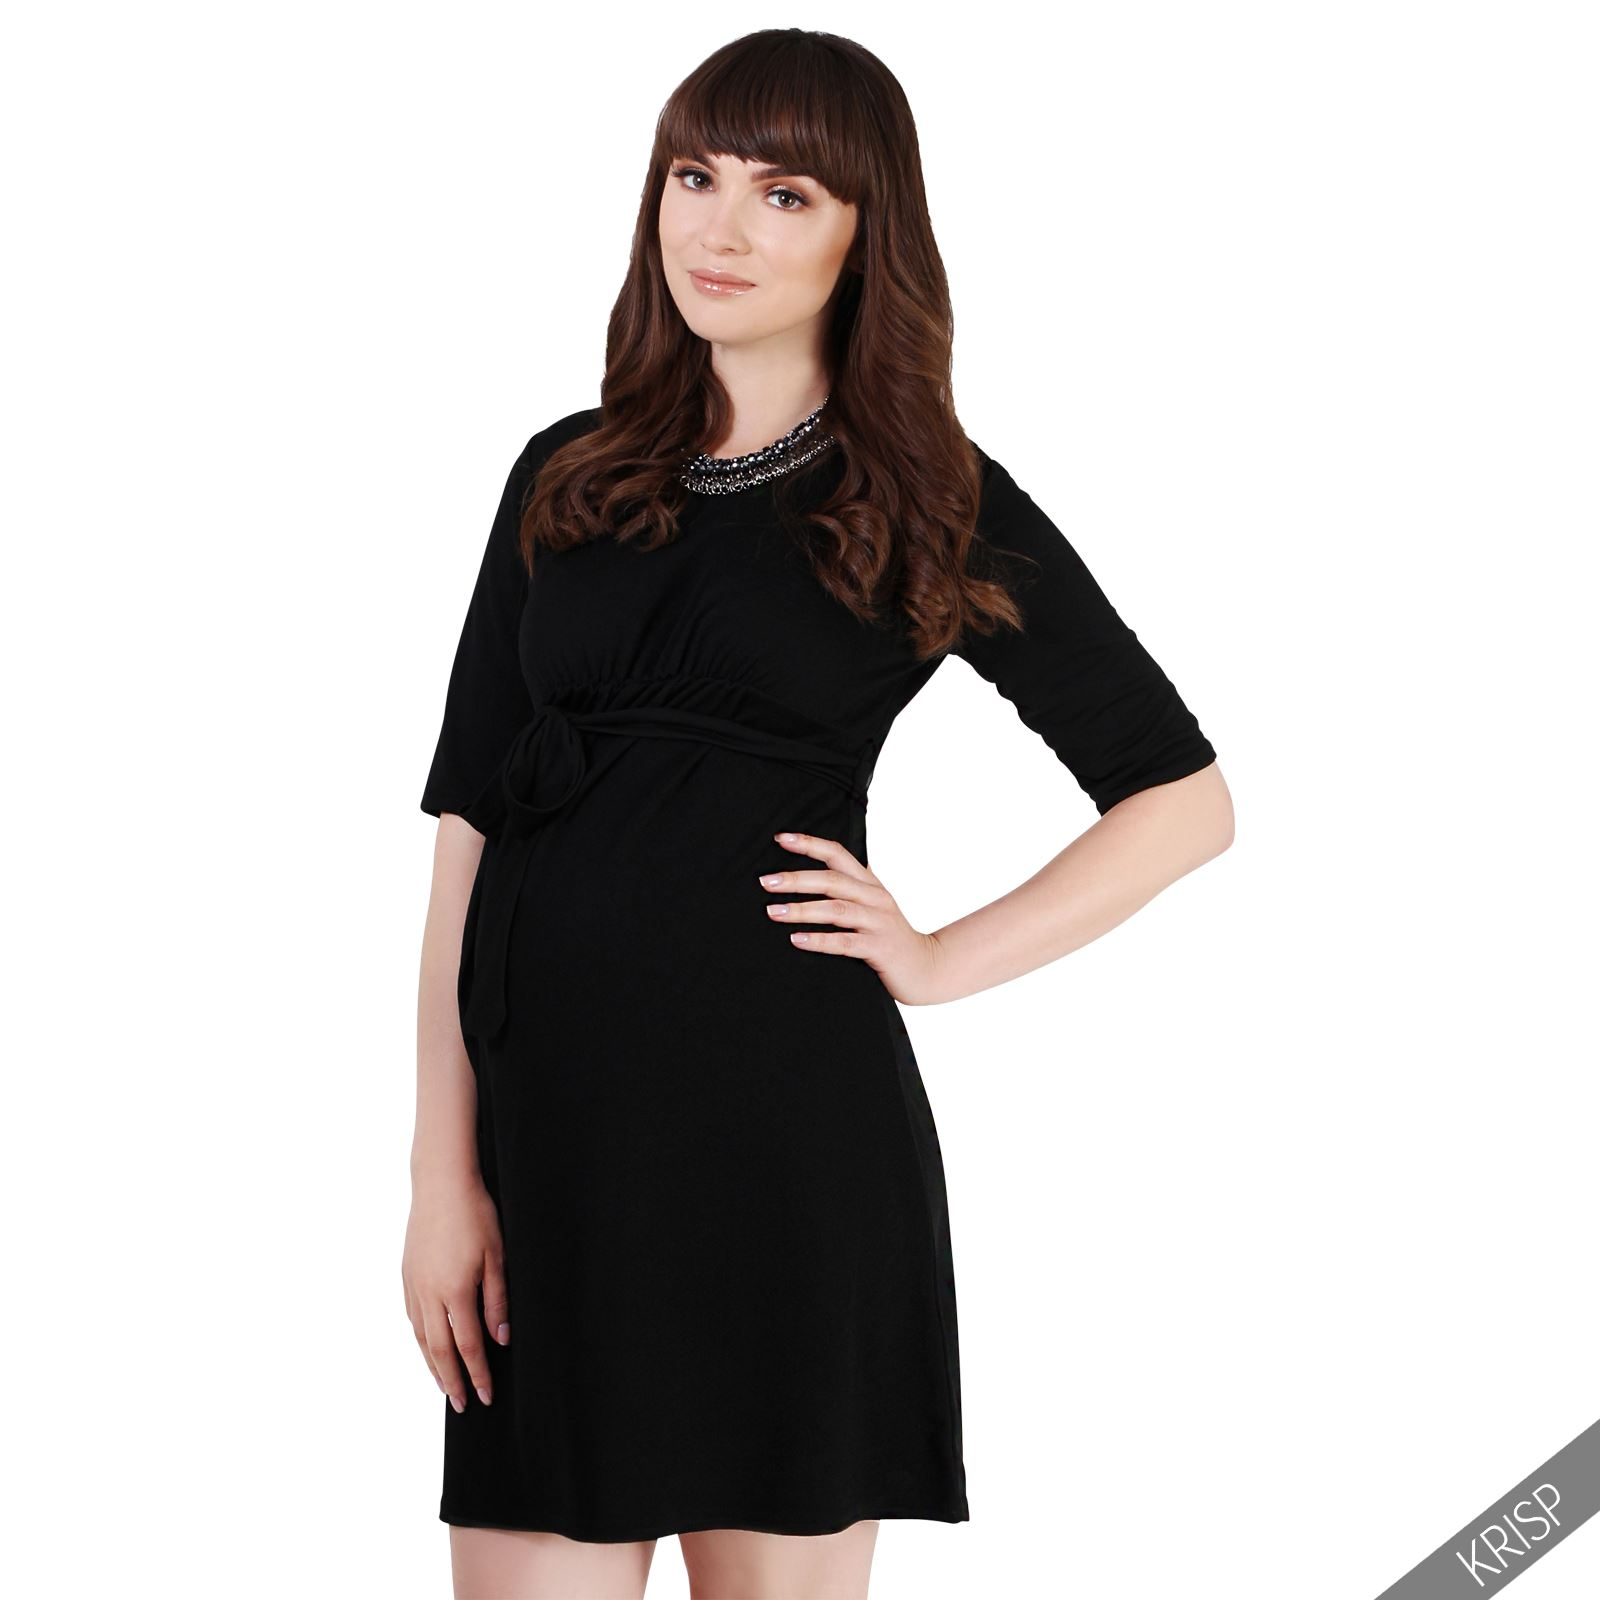 Maternity clothing pregnancy party dress short sleeve top stretch maternity clothing pregnancy party dress short sleeve top ombrellifo Image collections